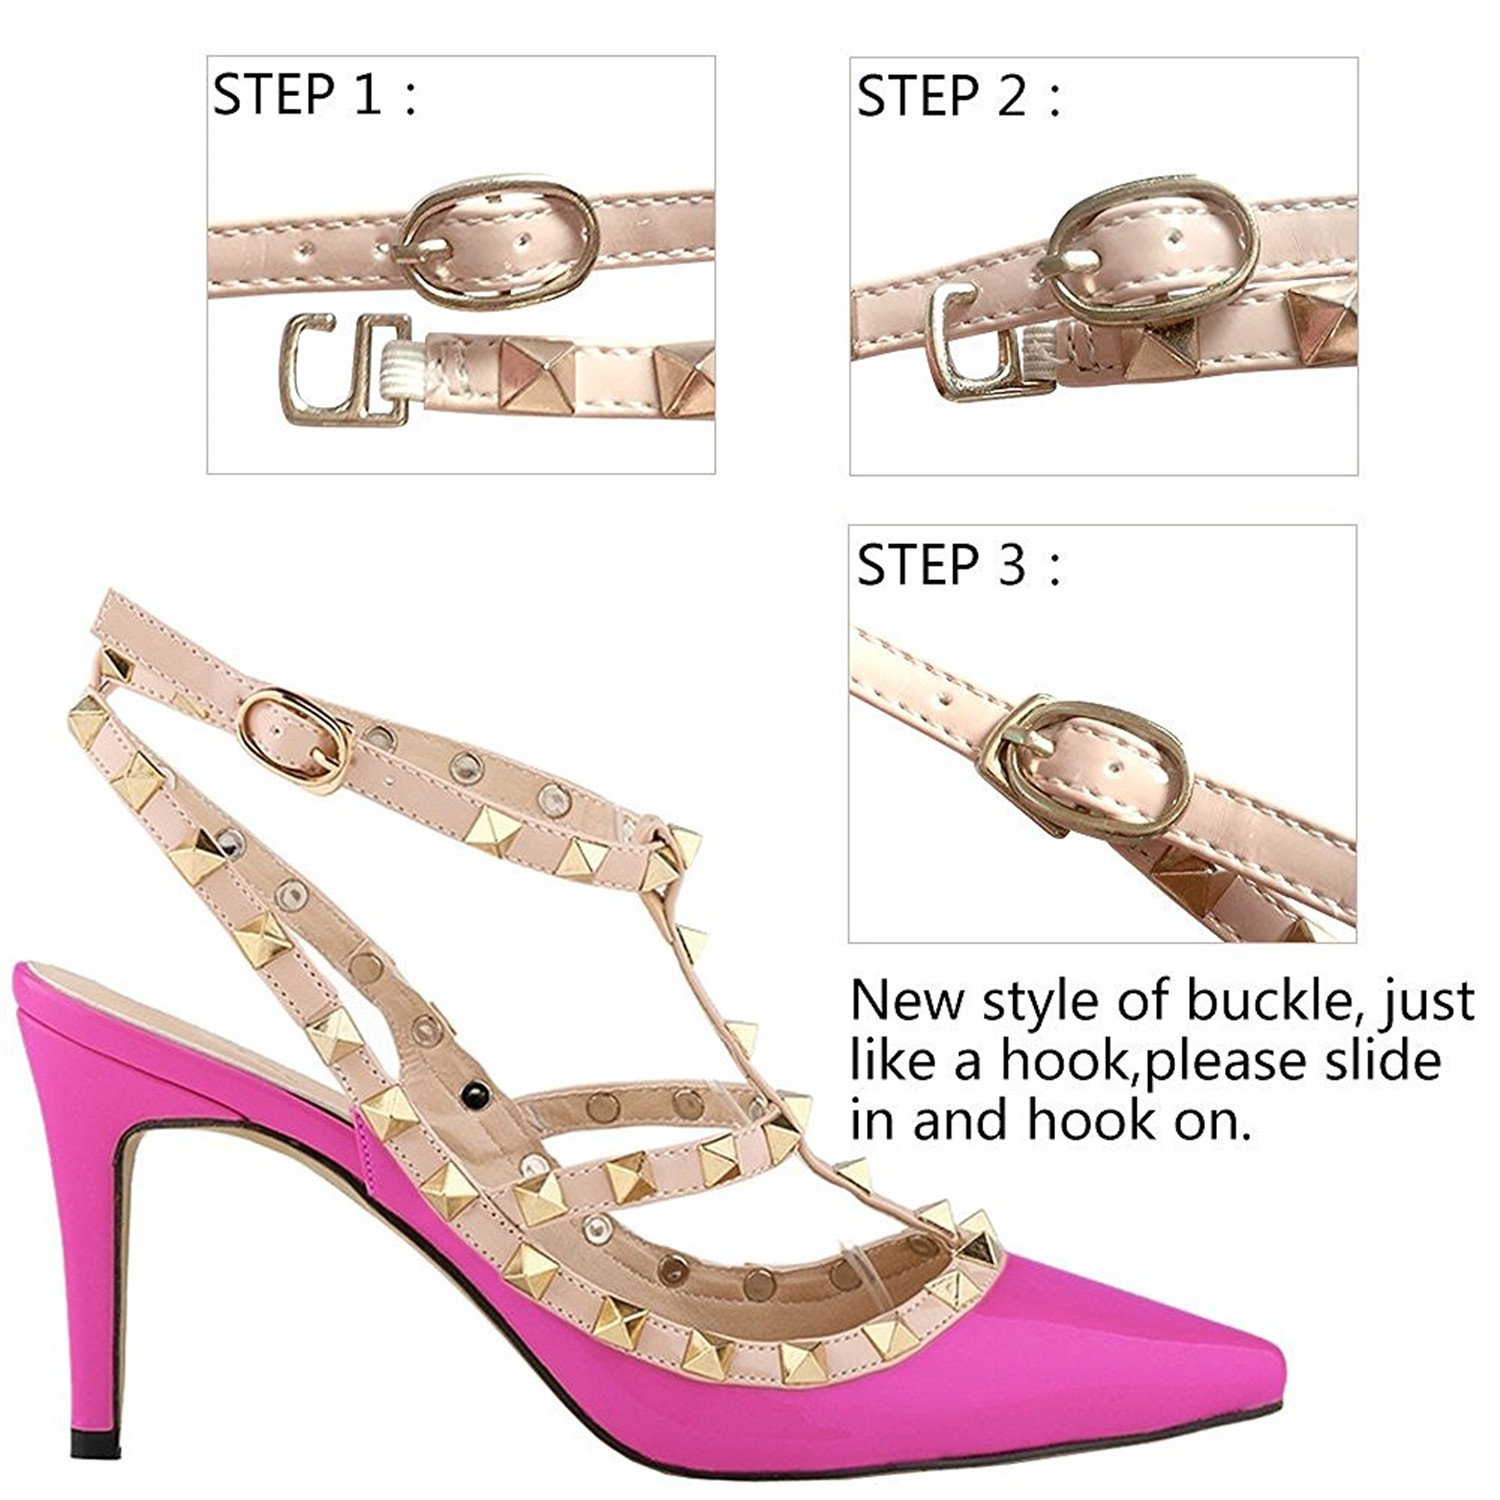 Oppicong Ladies High Heels Party Wedding Count Pump Shoes